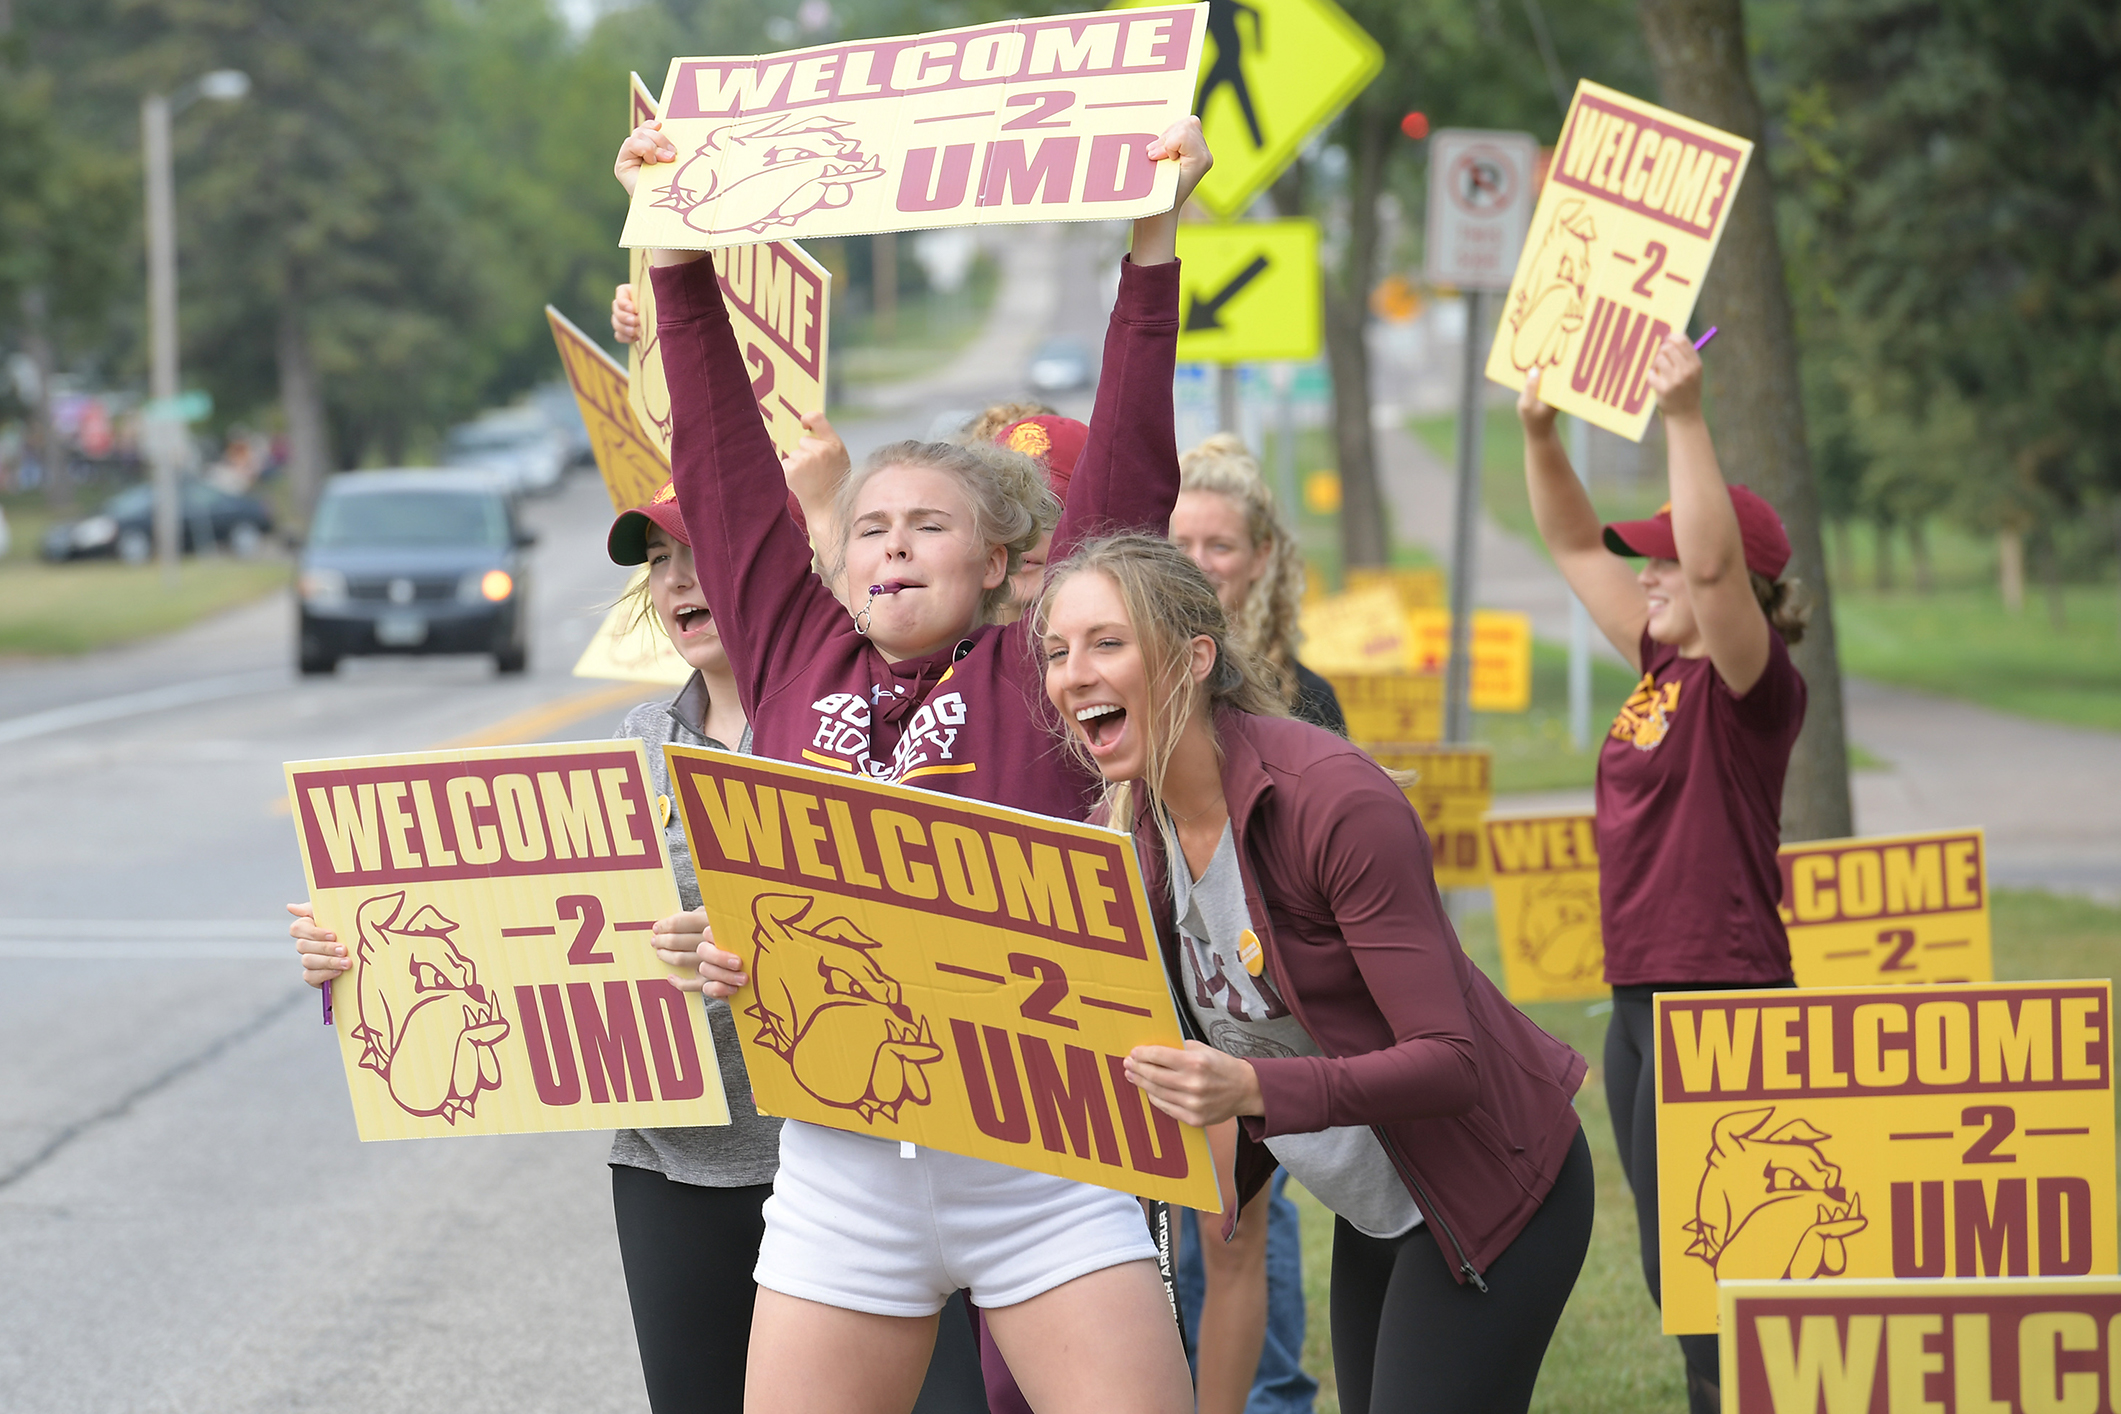 Students welcoming incoming students with signs